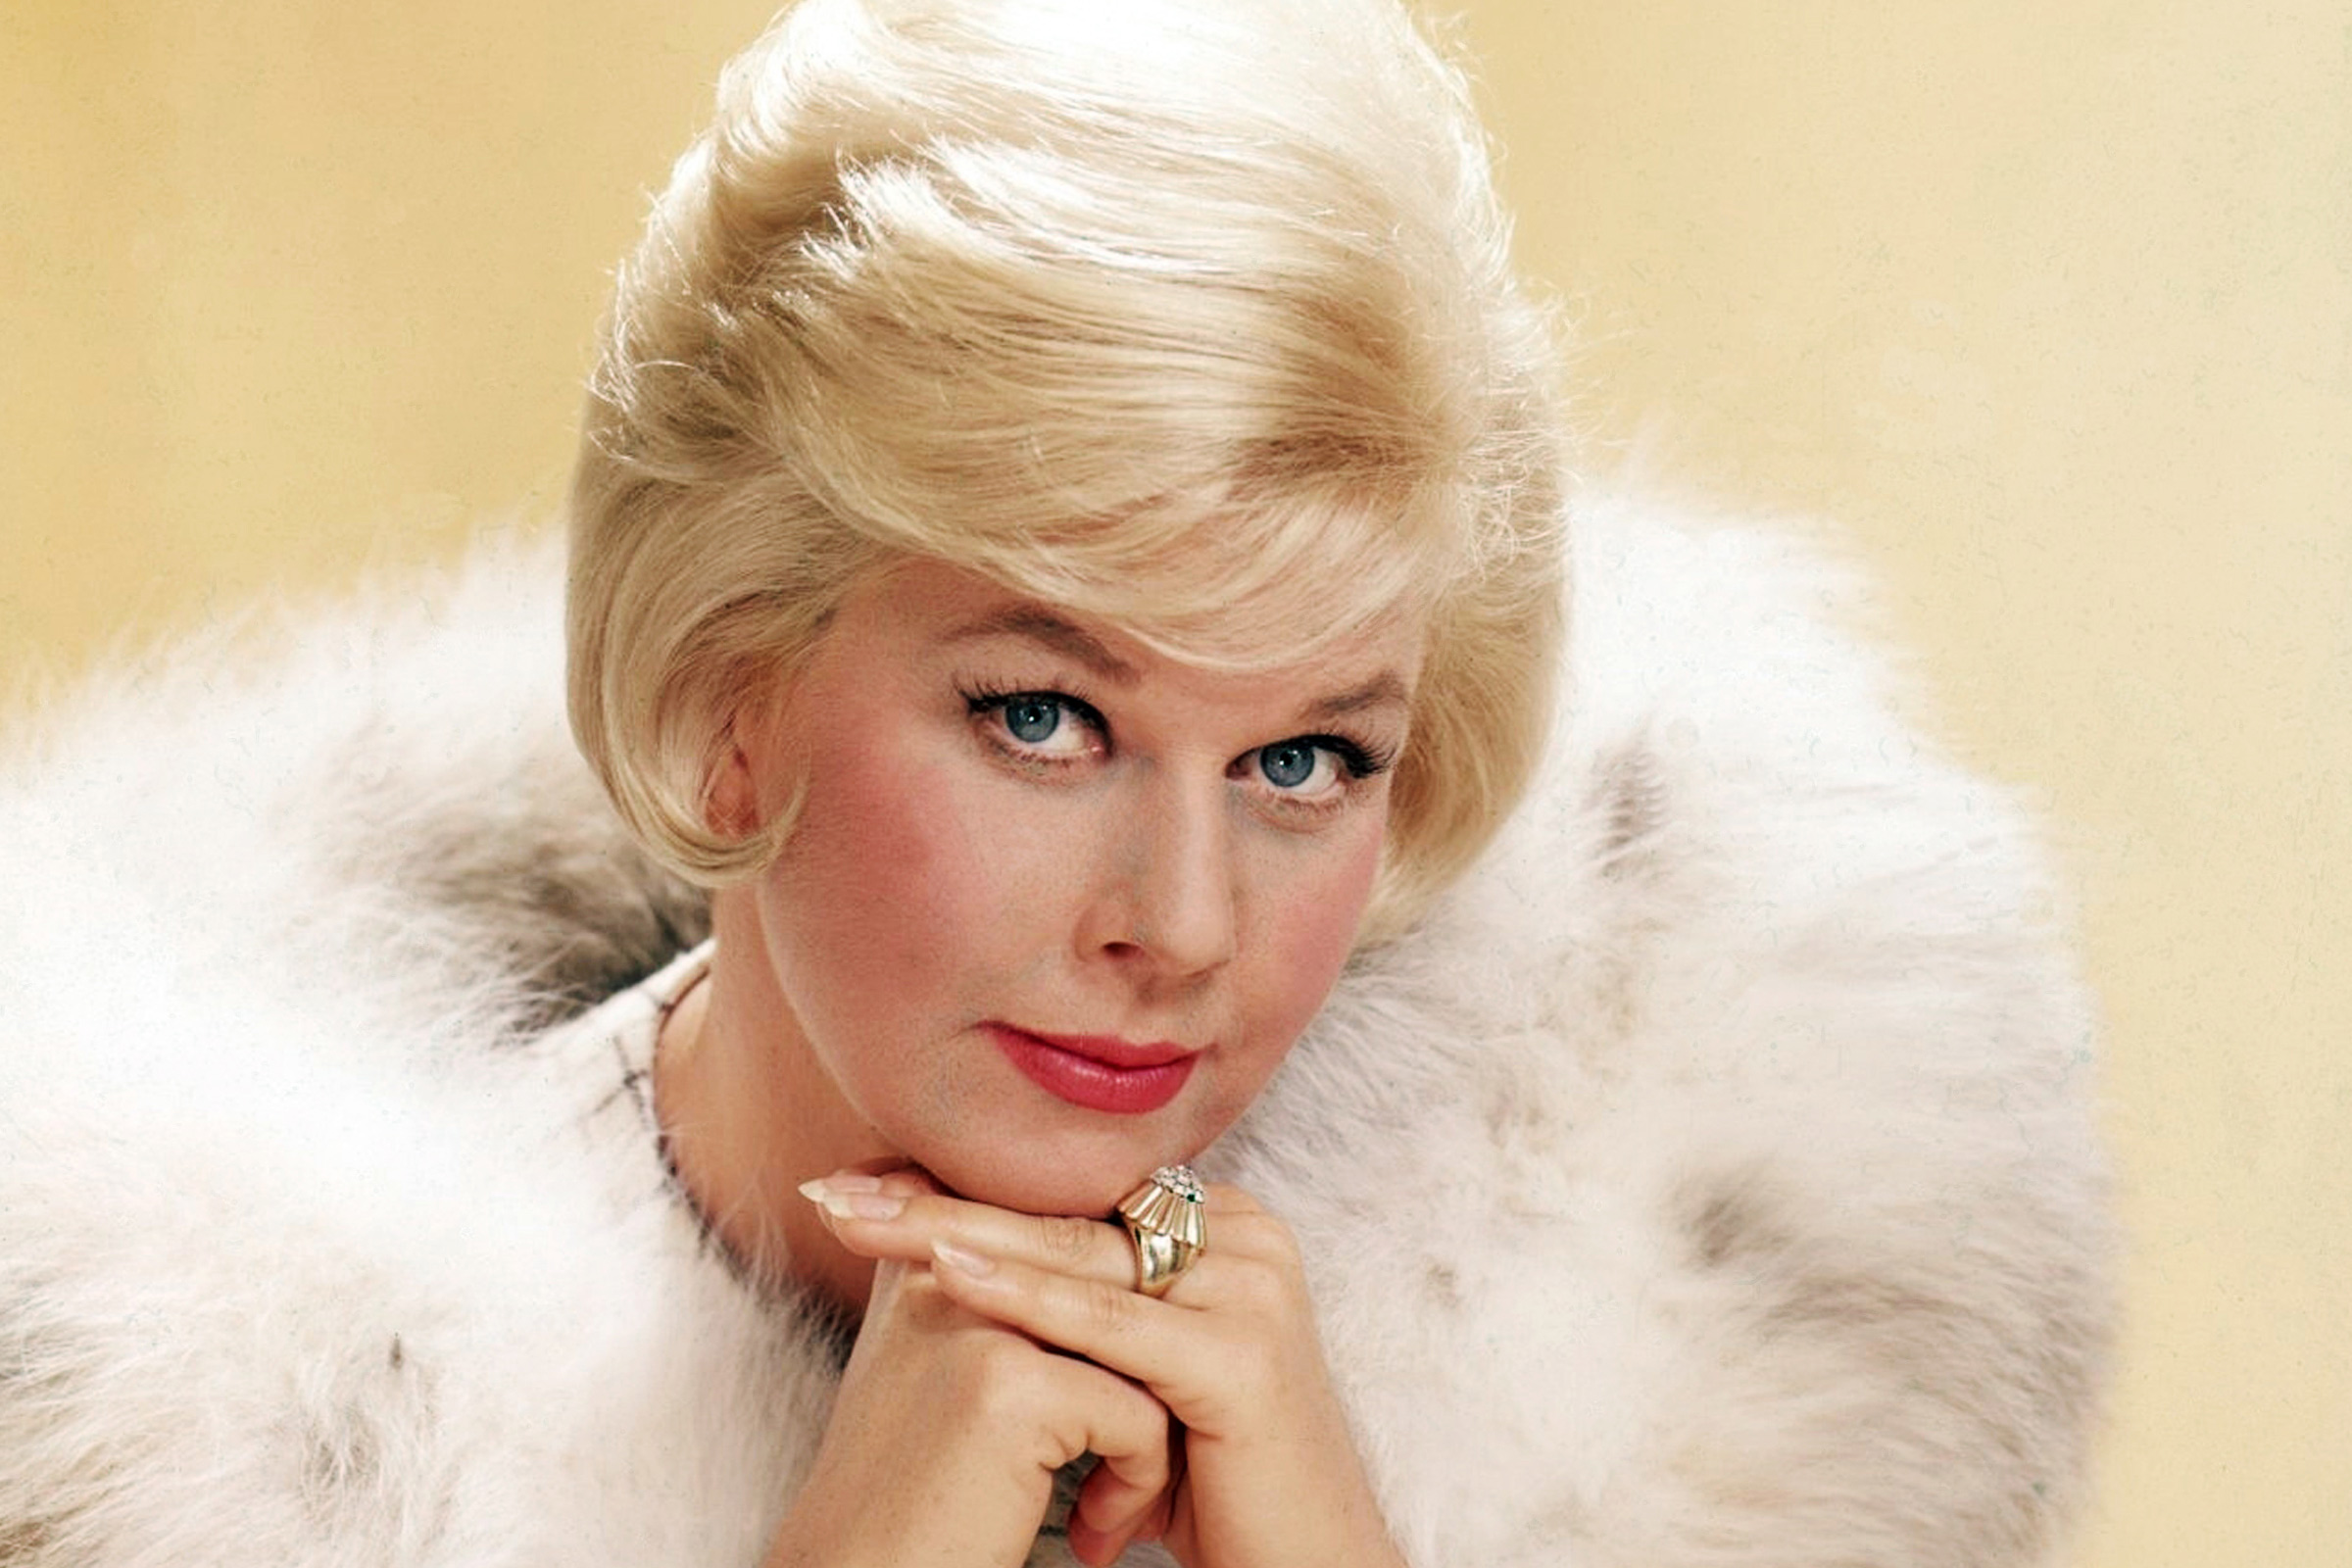 Remembering Doris Day and her influence on music in advertising